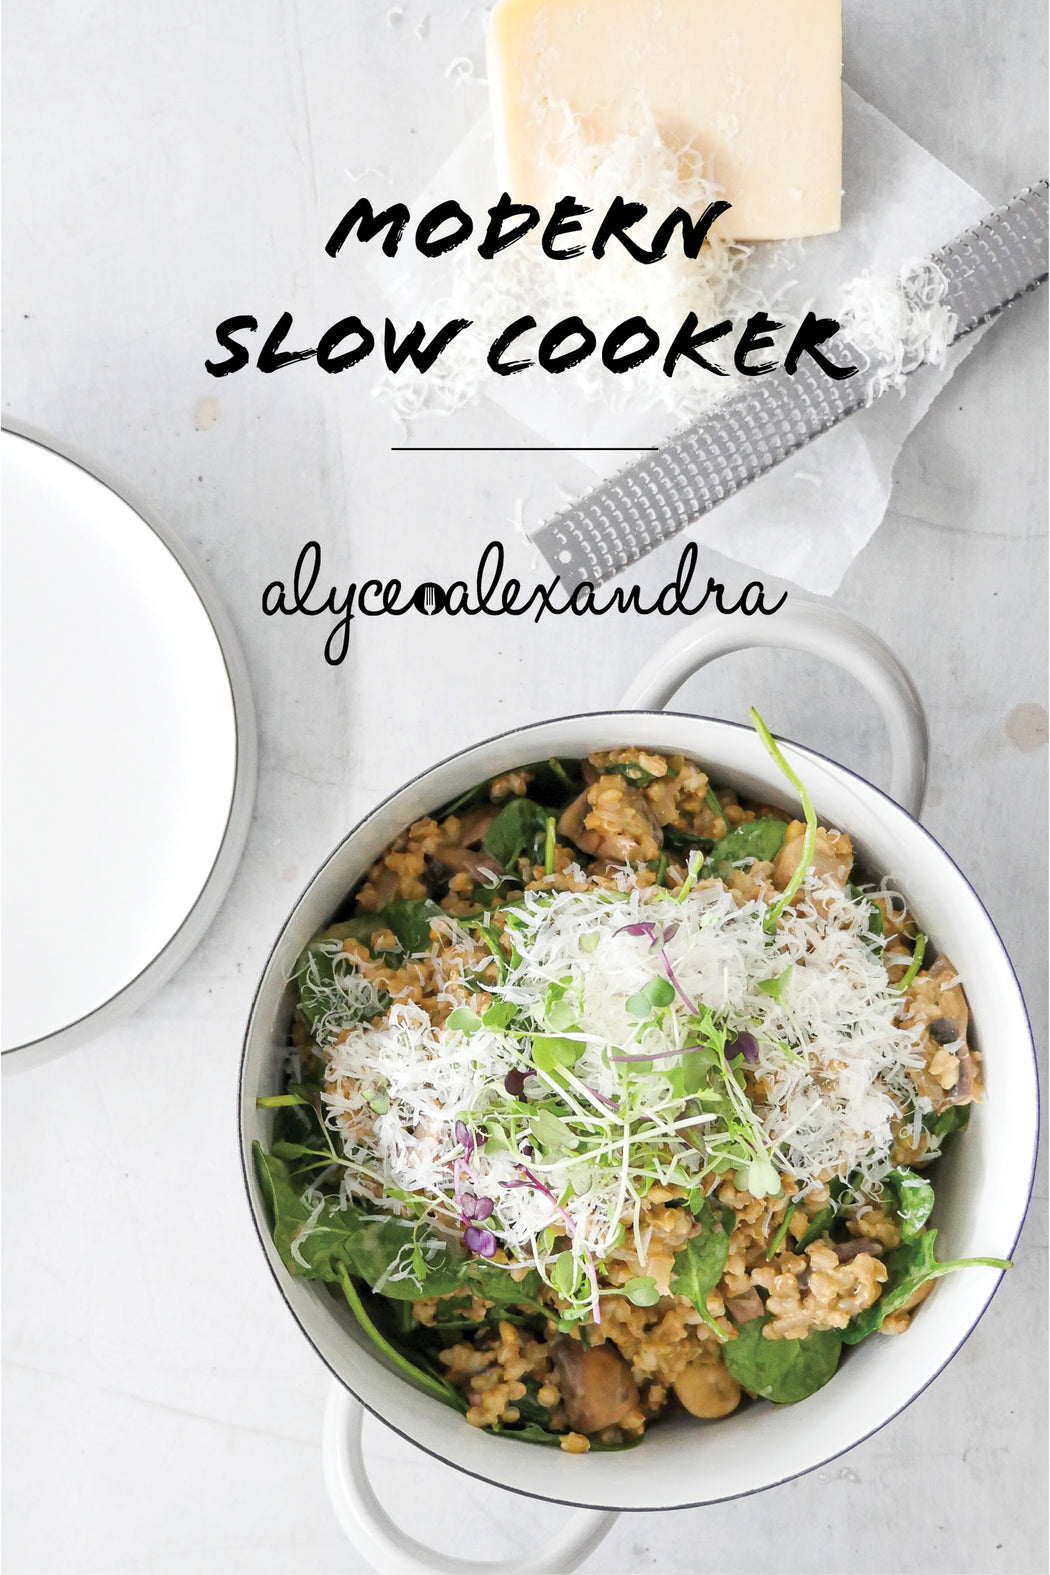 Modern Slow Cooker - eBook Only